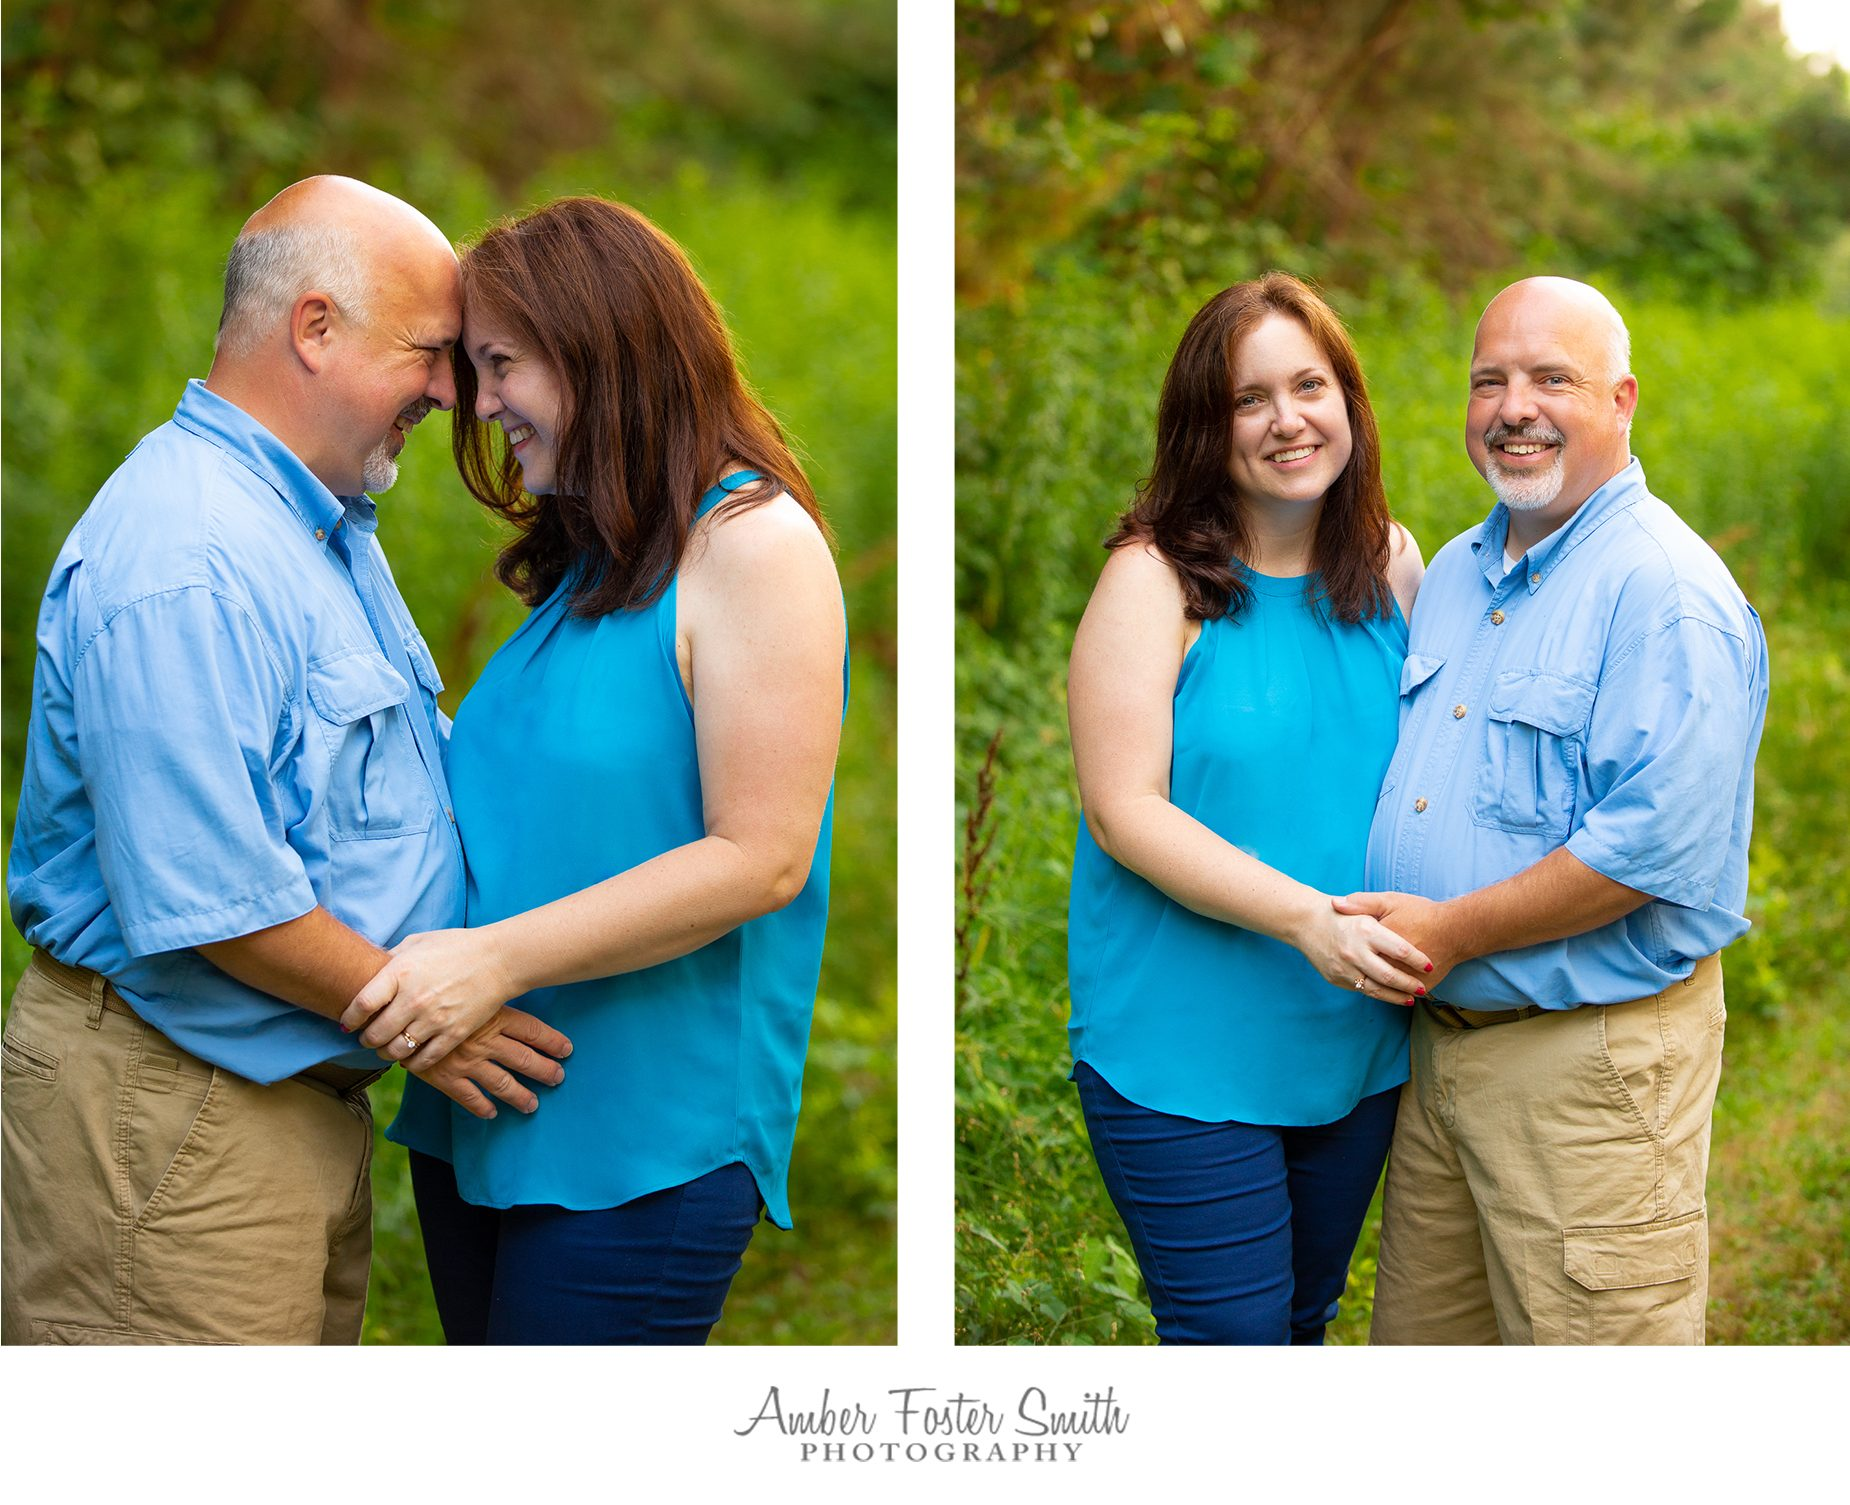 Amber Foster Smith Photography - Holly Springs Portrait Photography